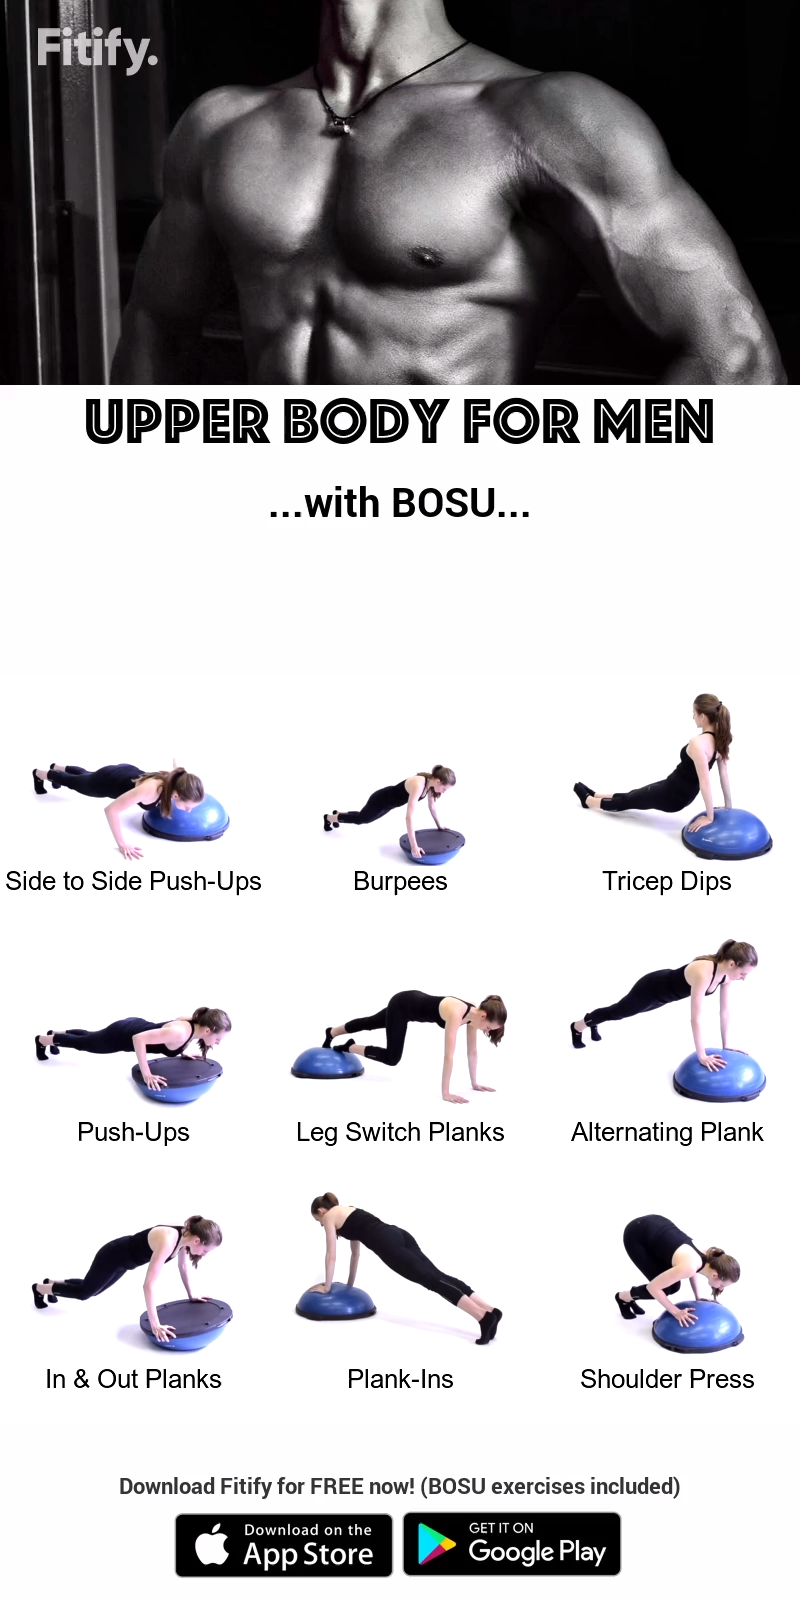 BOSU � UPPER BODY WORKOUT �